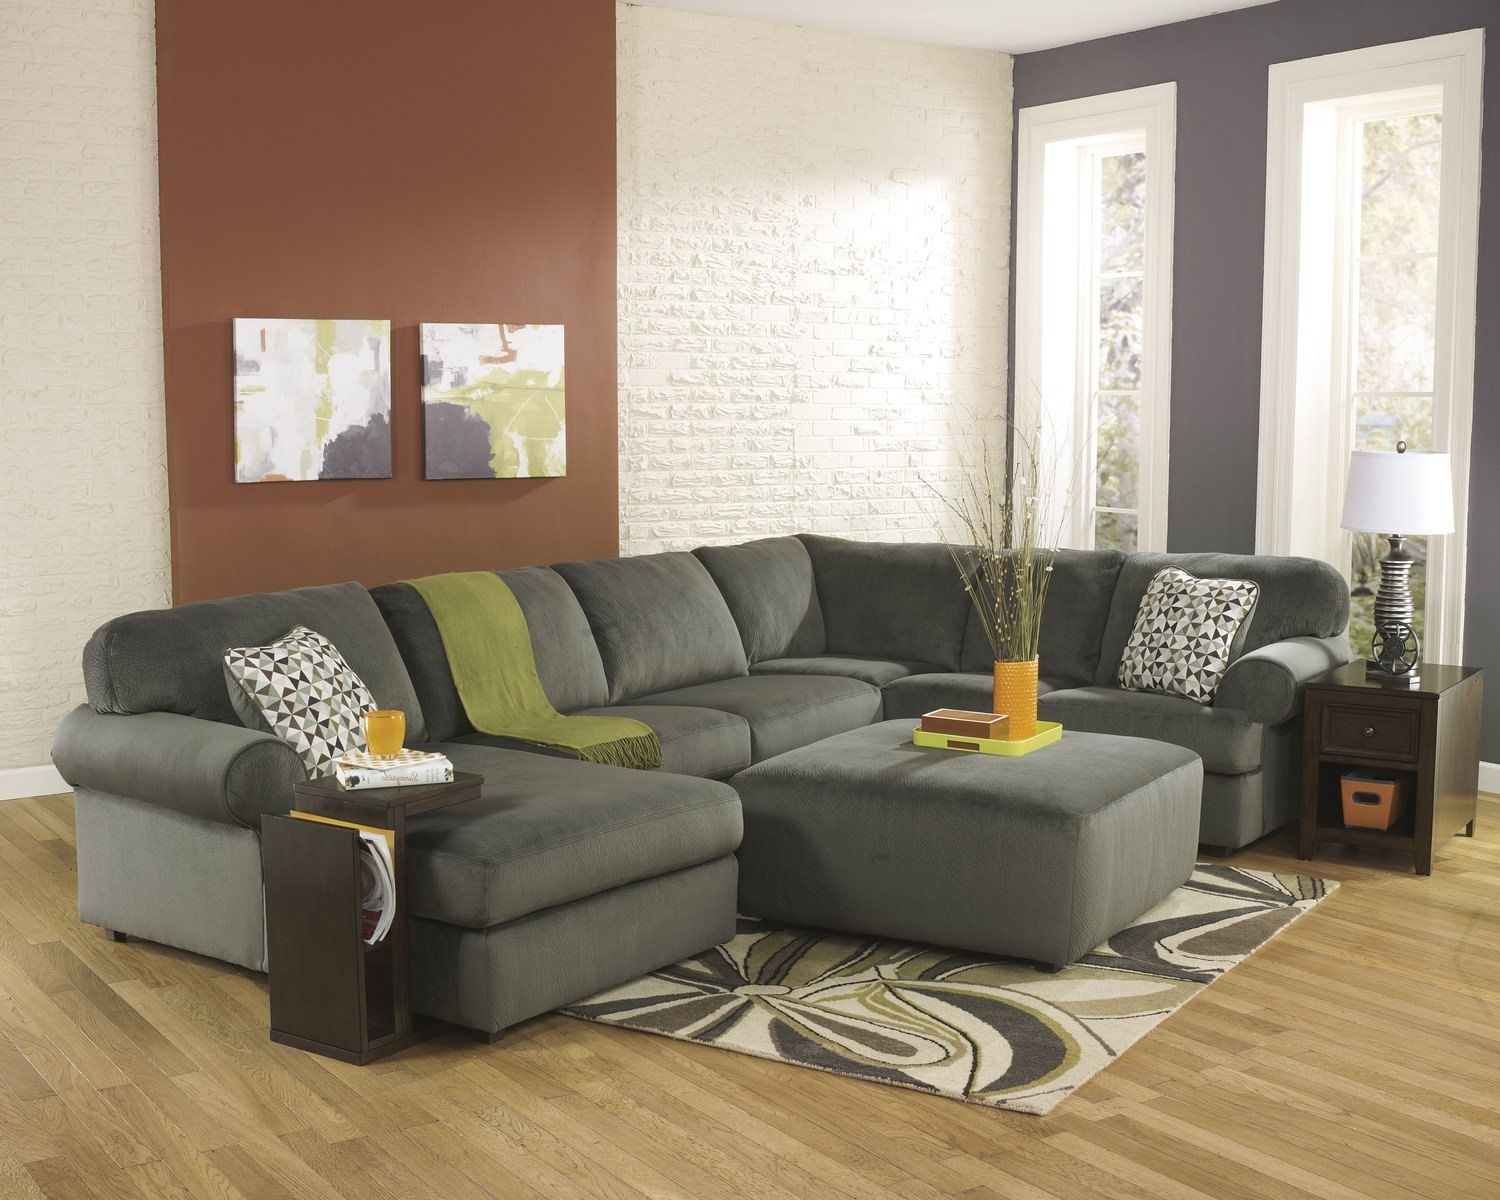 """Coach 3 Piece Sectional """"Pewter""""   Basement   Pinterest   Pewter And Inside Blaine 4 Piece Sectionals (Image 5 of 25)"""